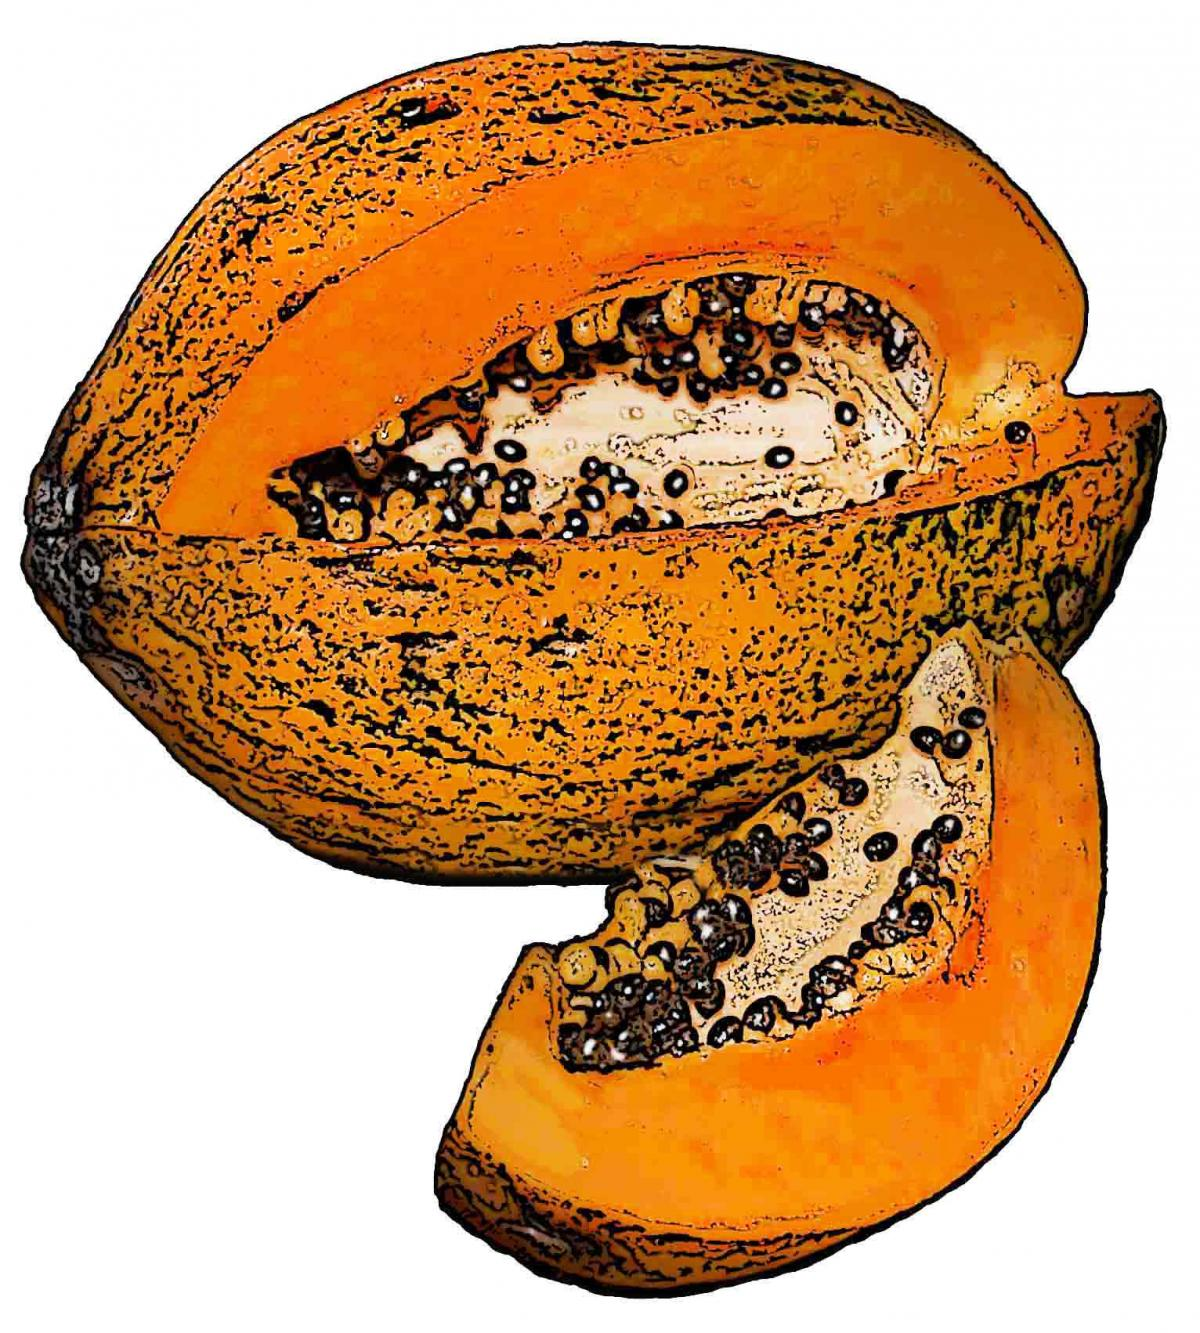 Food - Sweet Potato - 00M - Non-country specific